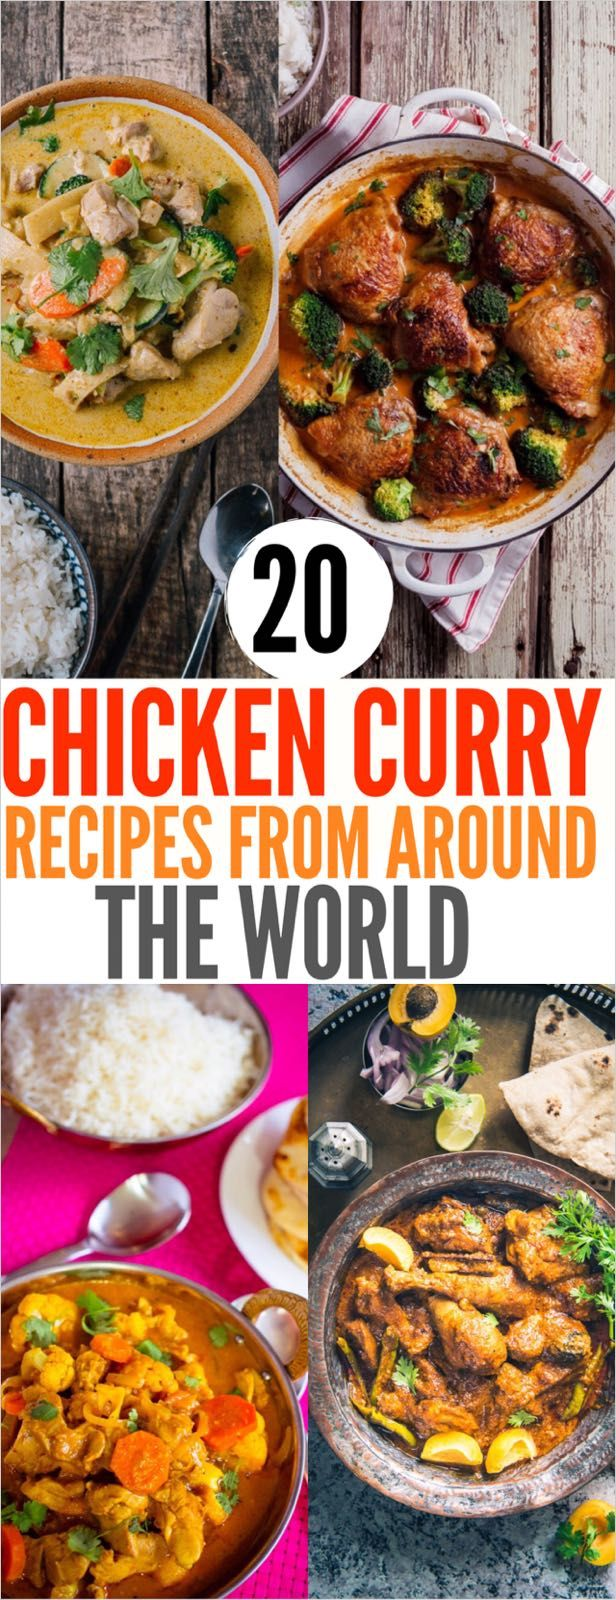 20 Chicken Curry Recipes From Around The World Curry Recipes Curry Chicken Recipes Recipes